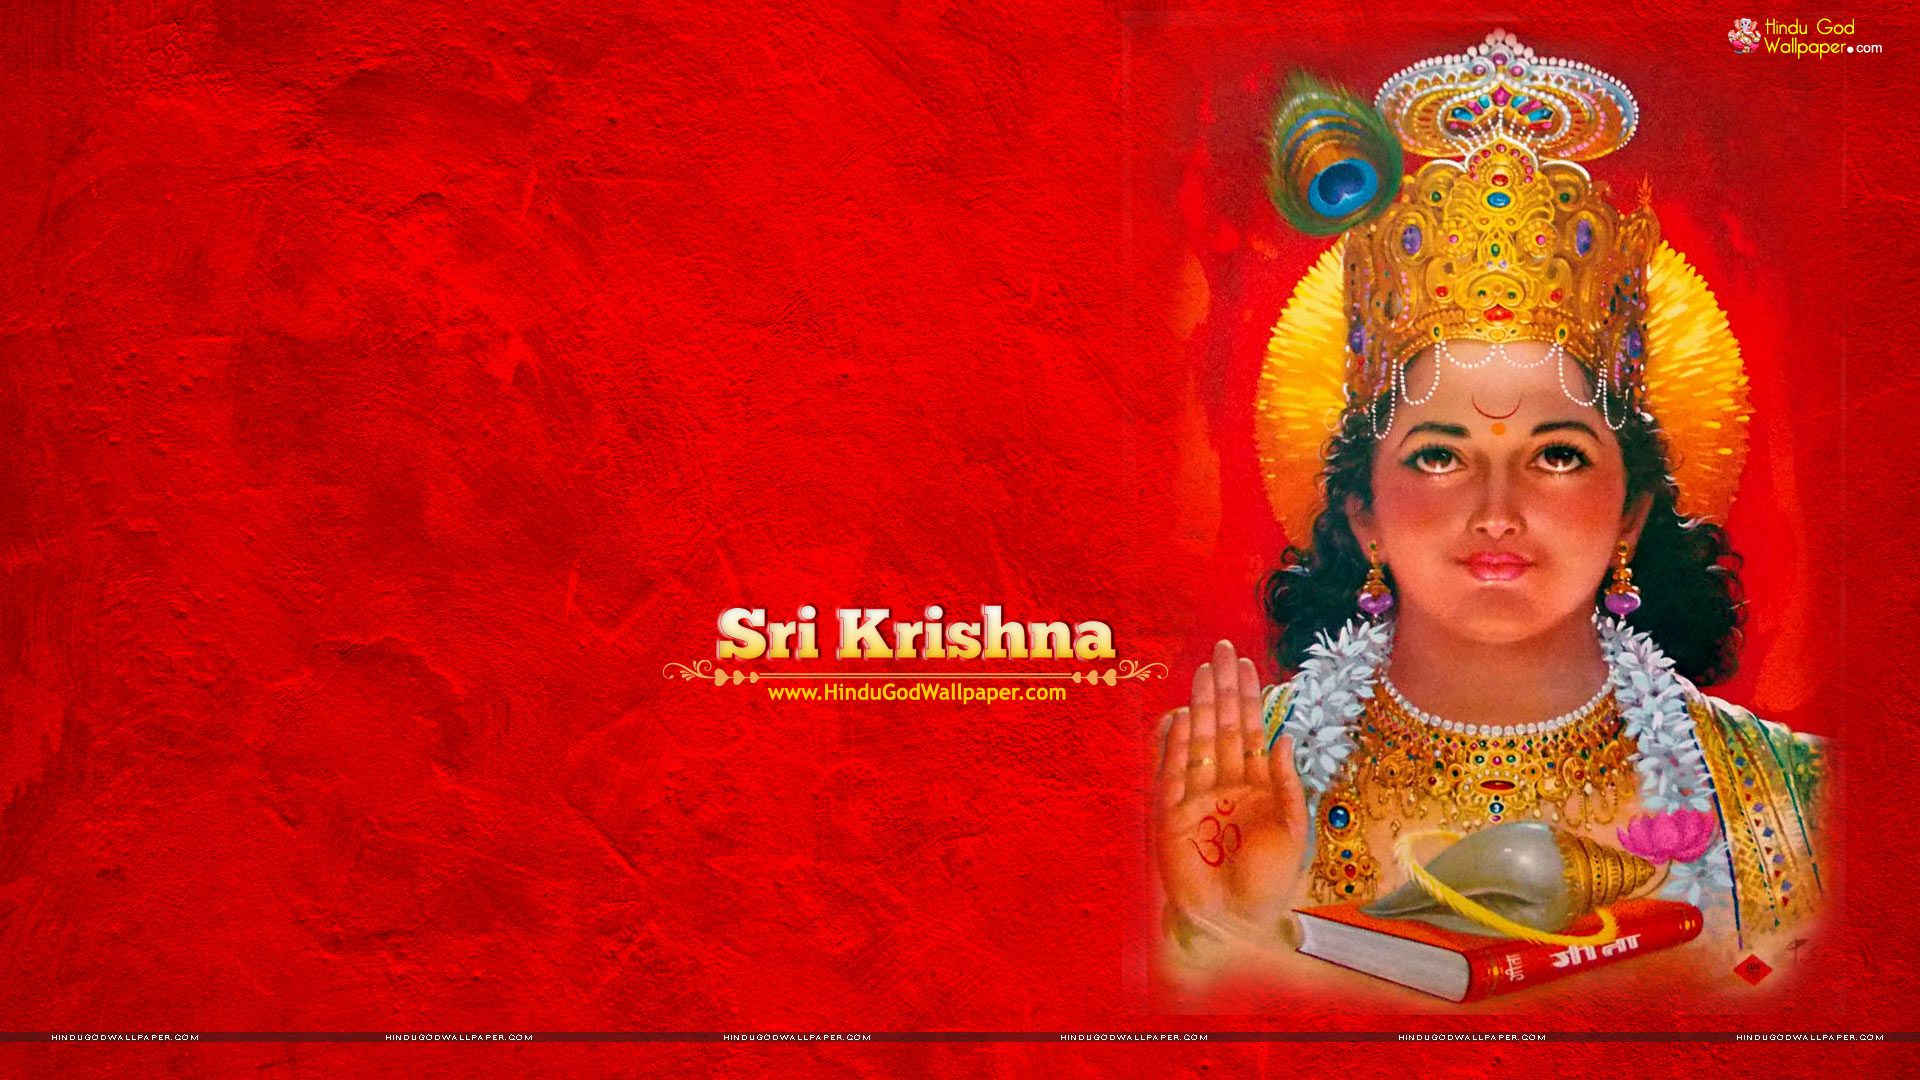 Krishna Wallpaper 1920x1080 Hd Full Size Download Krishna